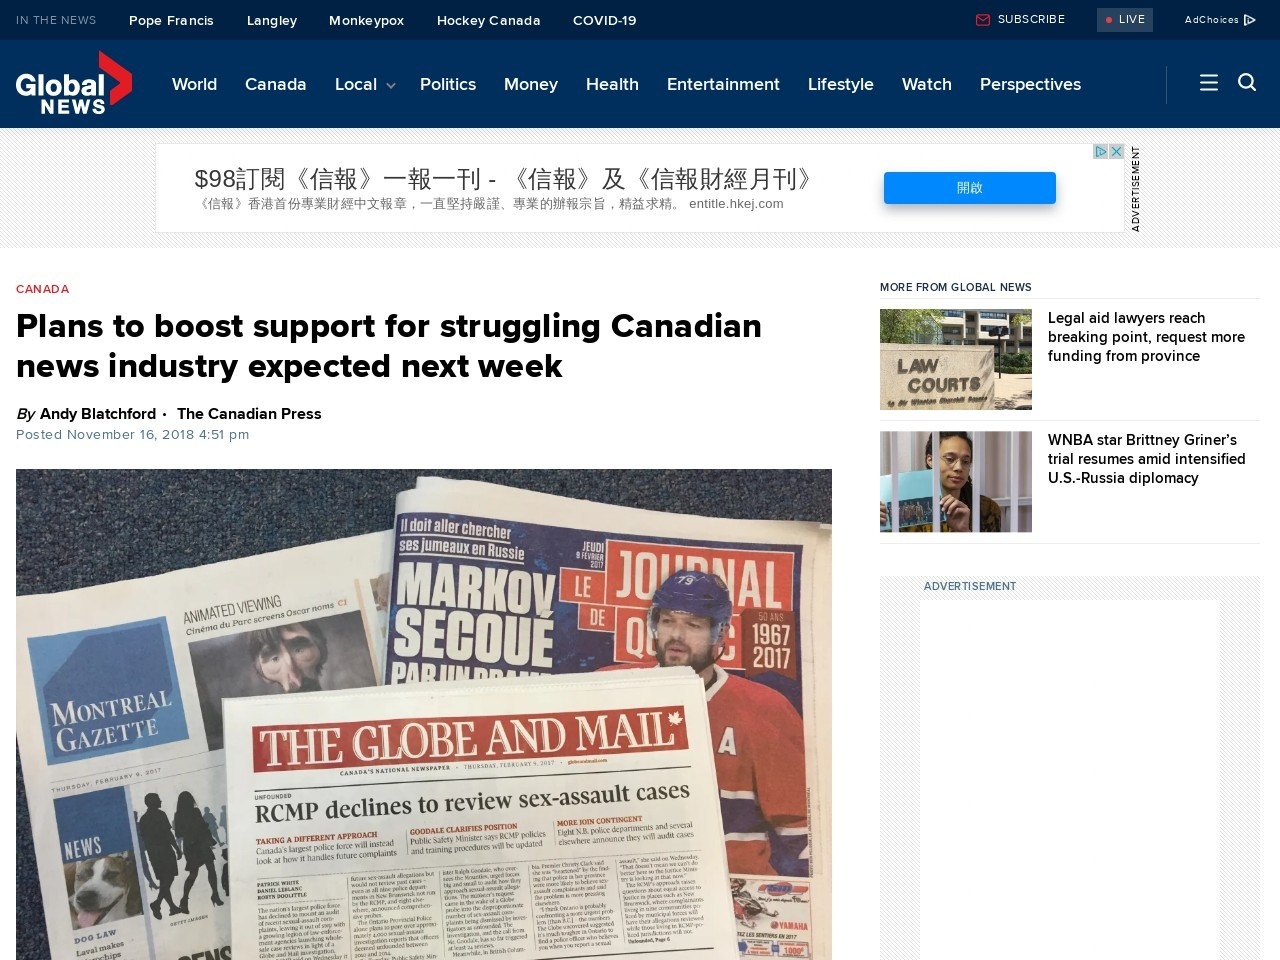 Plans to boost support for struggling Canadian news industry expected next week